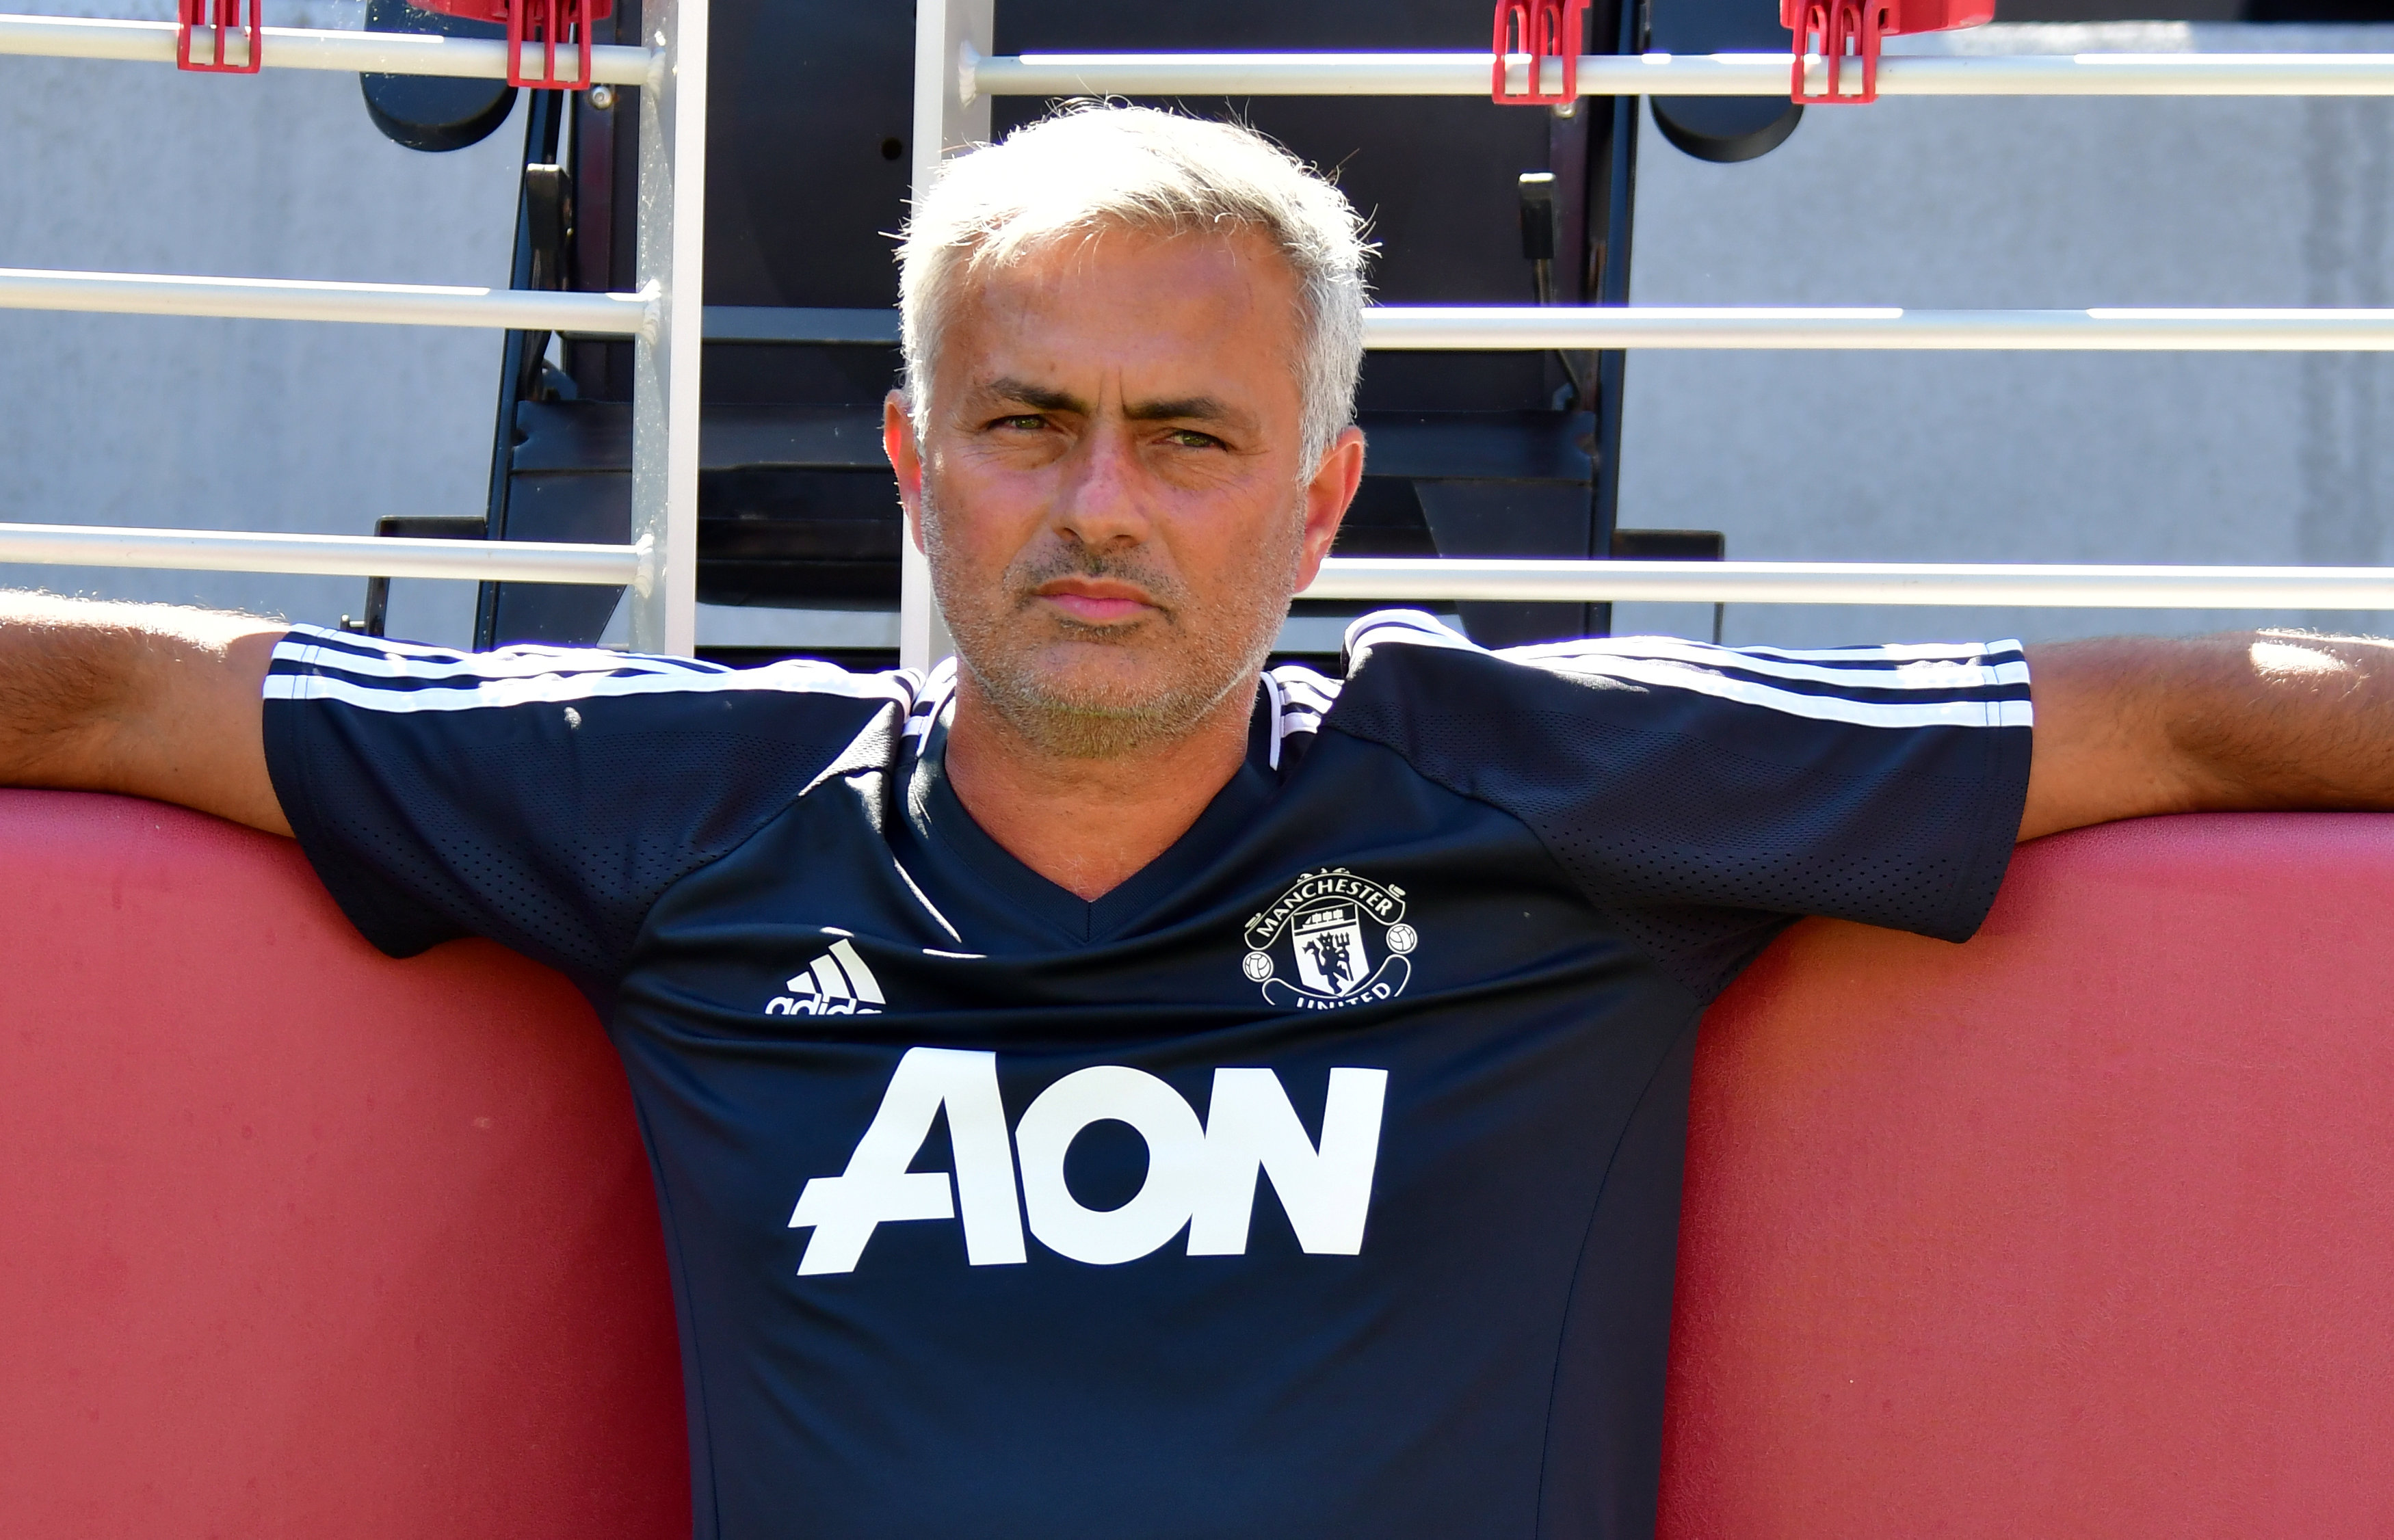 Football: Mourinho challenges Martial to be more consistent